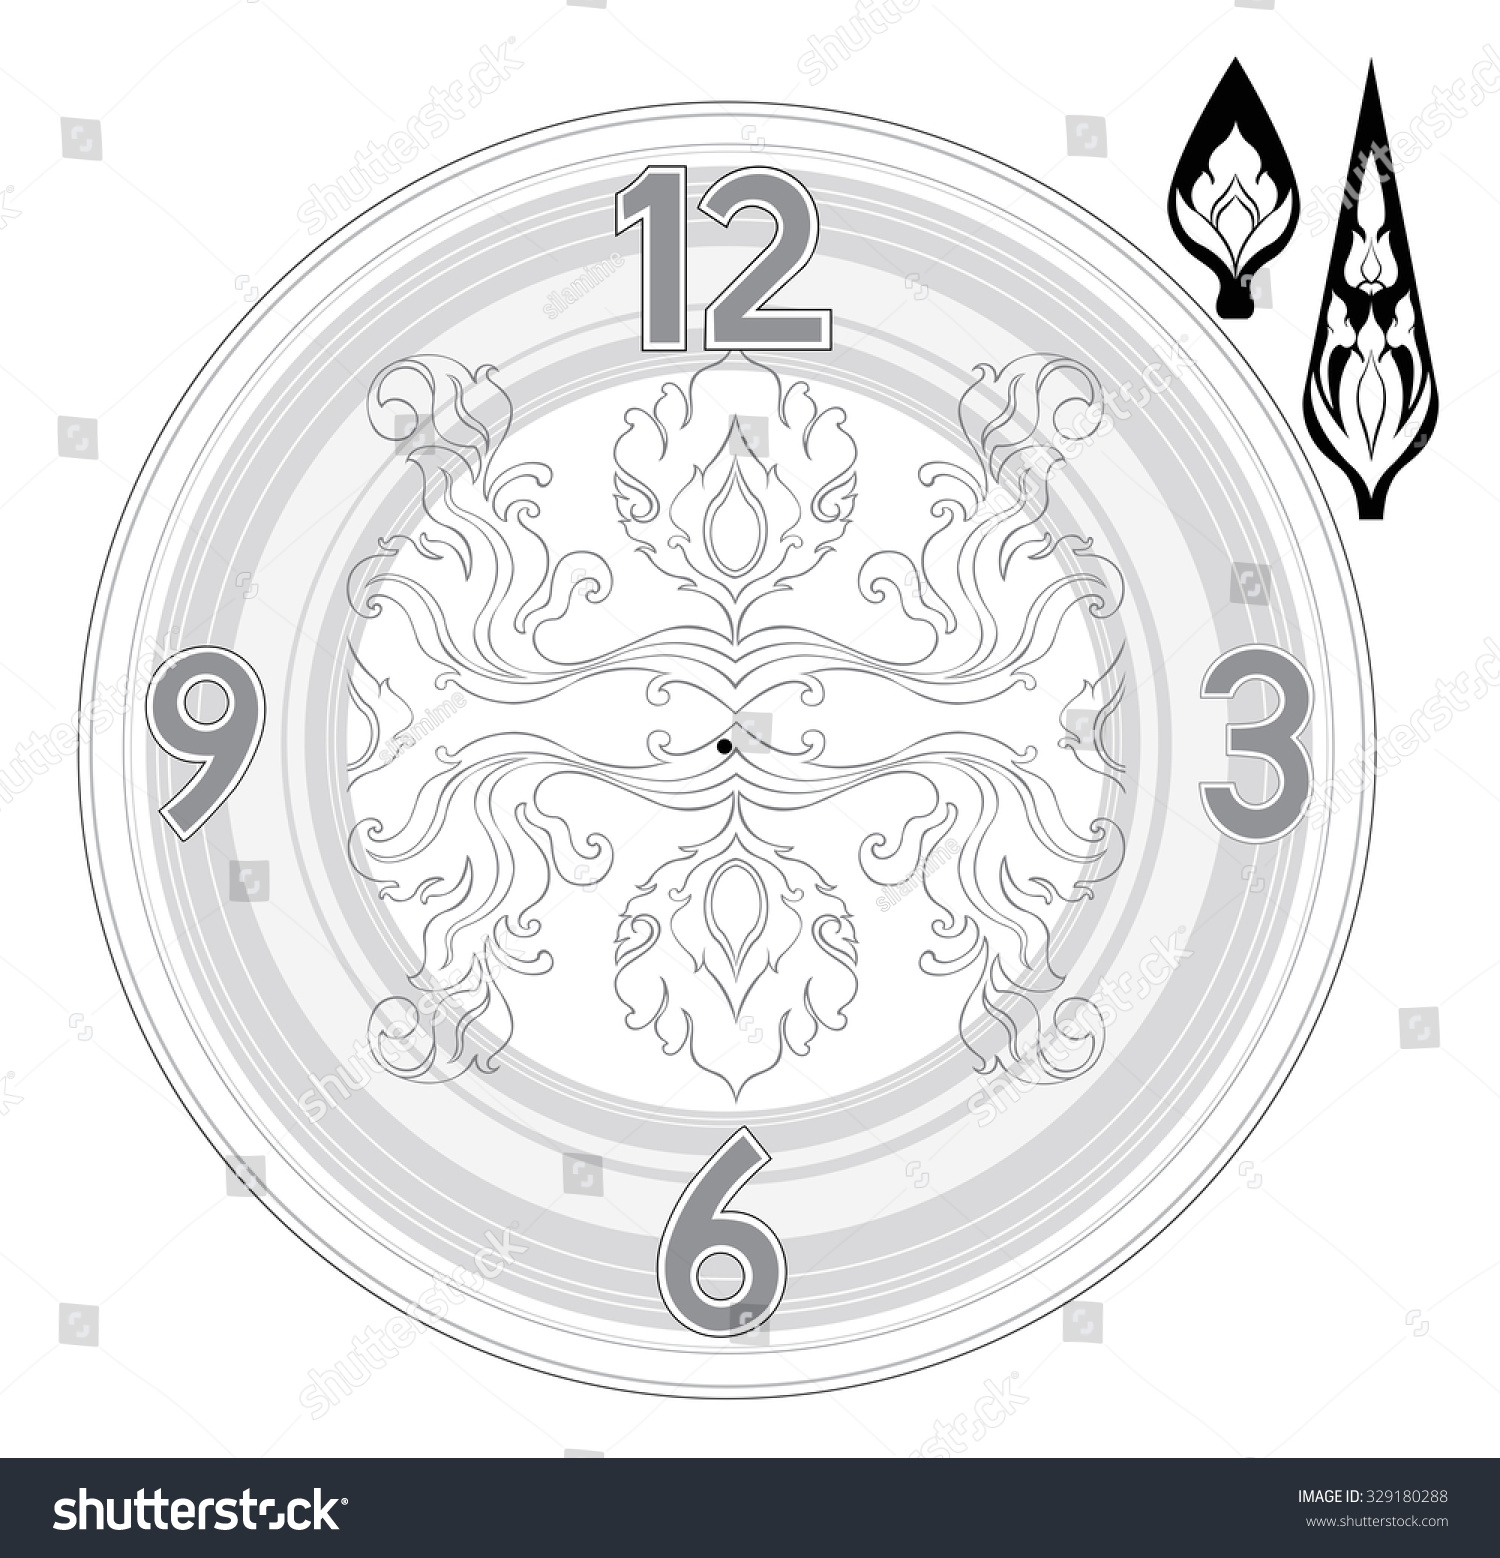 Product Design Line Art : Thai art line clock product design stock vector